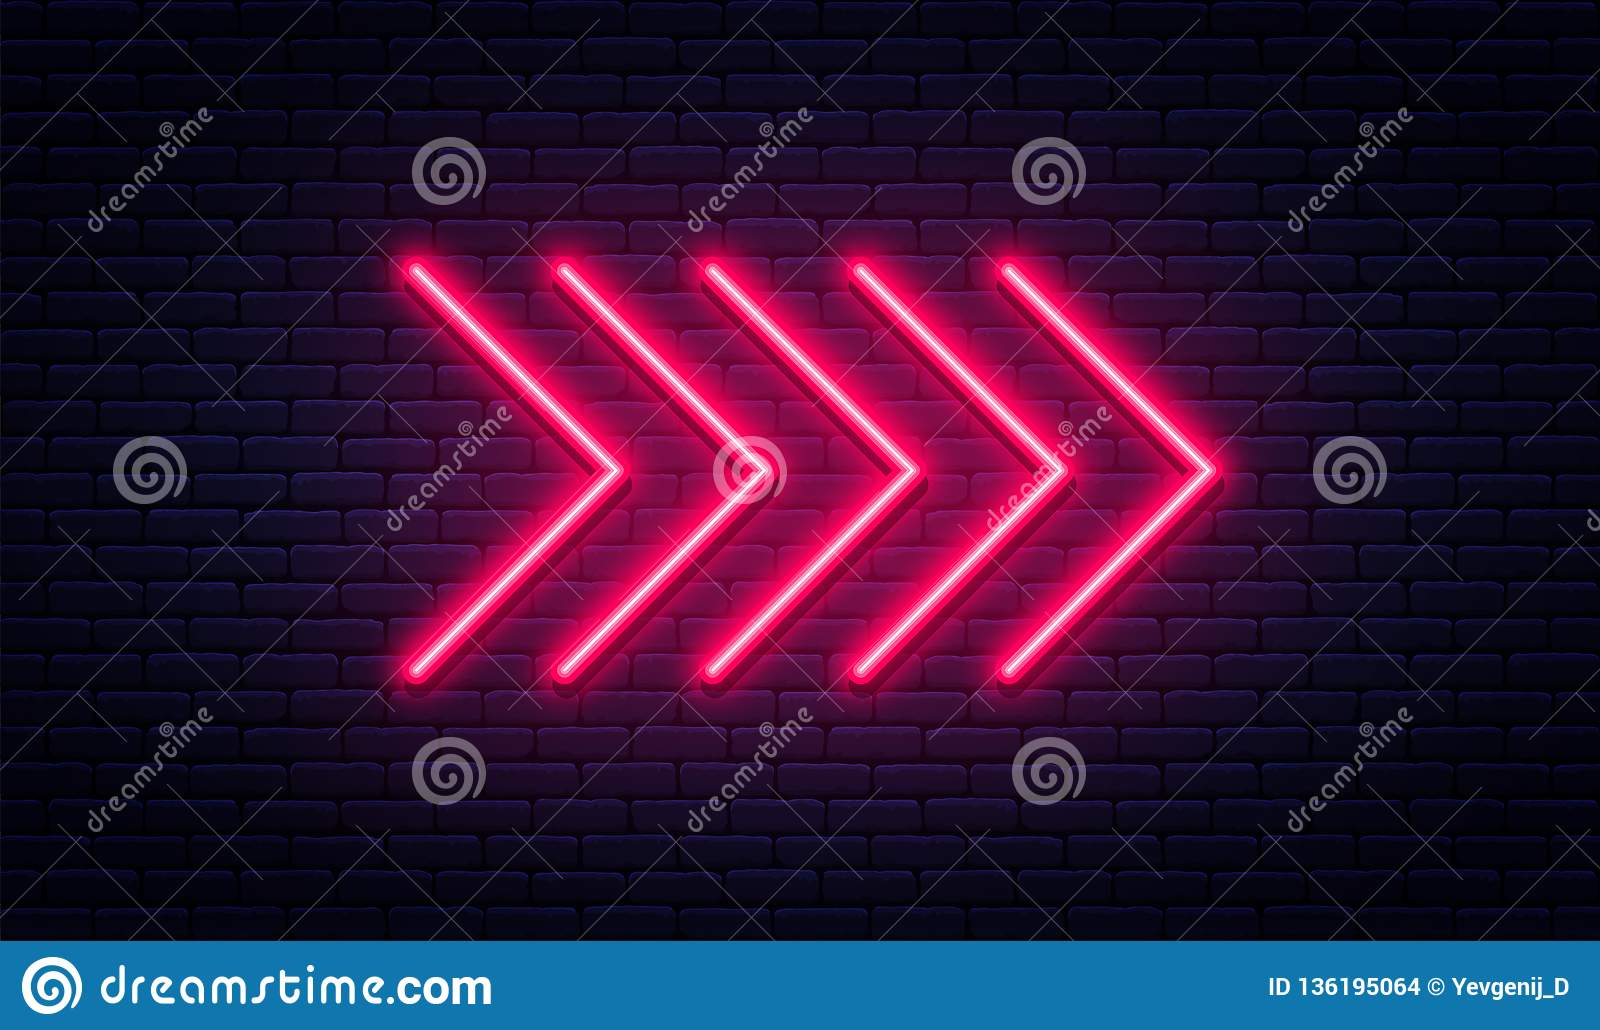 Neon arrow sign. Glowing neon arrow pointer on brick wall background. Retro signboard with bright neon tubes